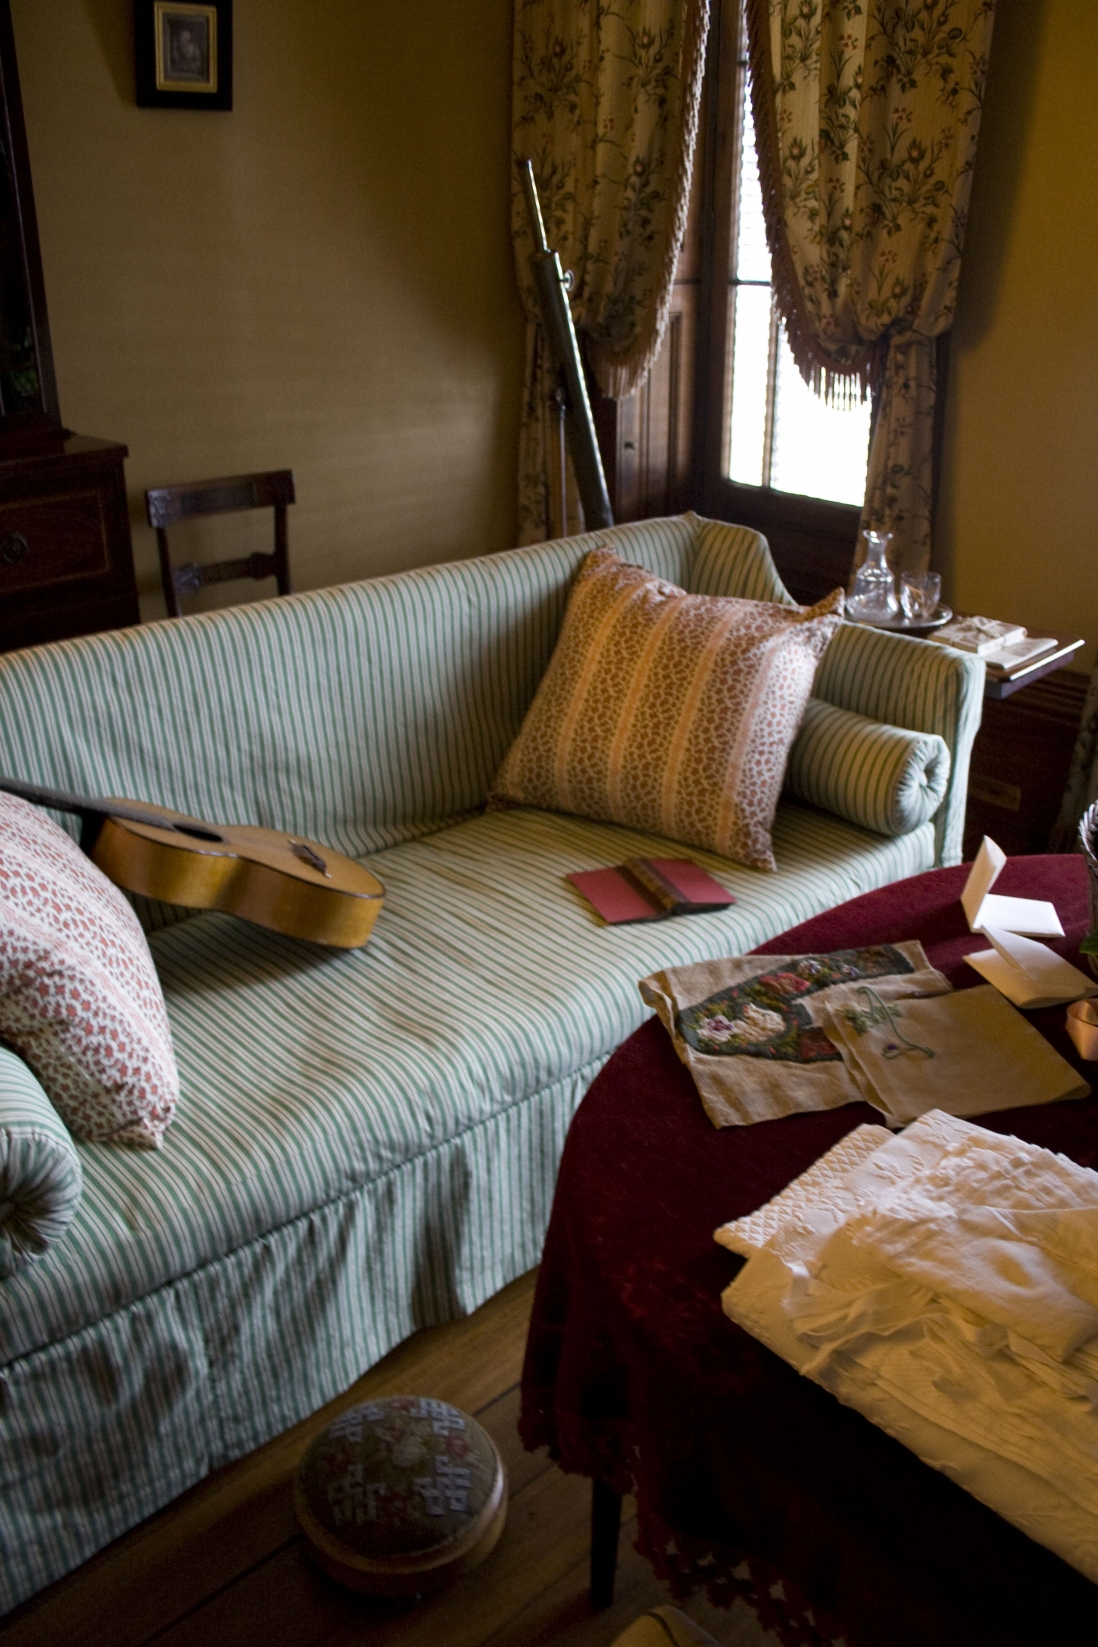 Fabric covered sofa and guitar in morning room at Elizabeth Bay House